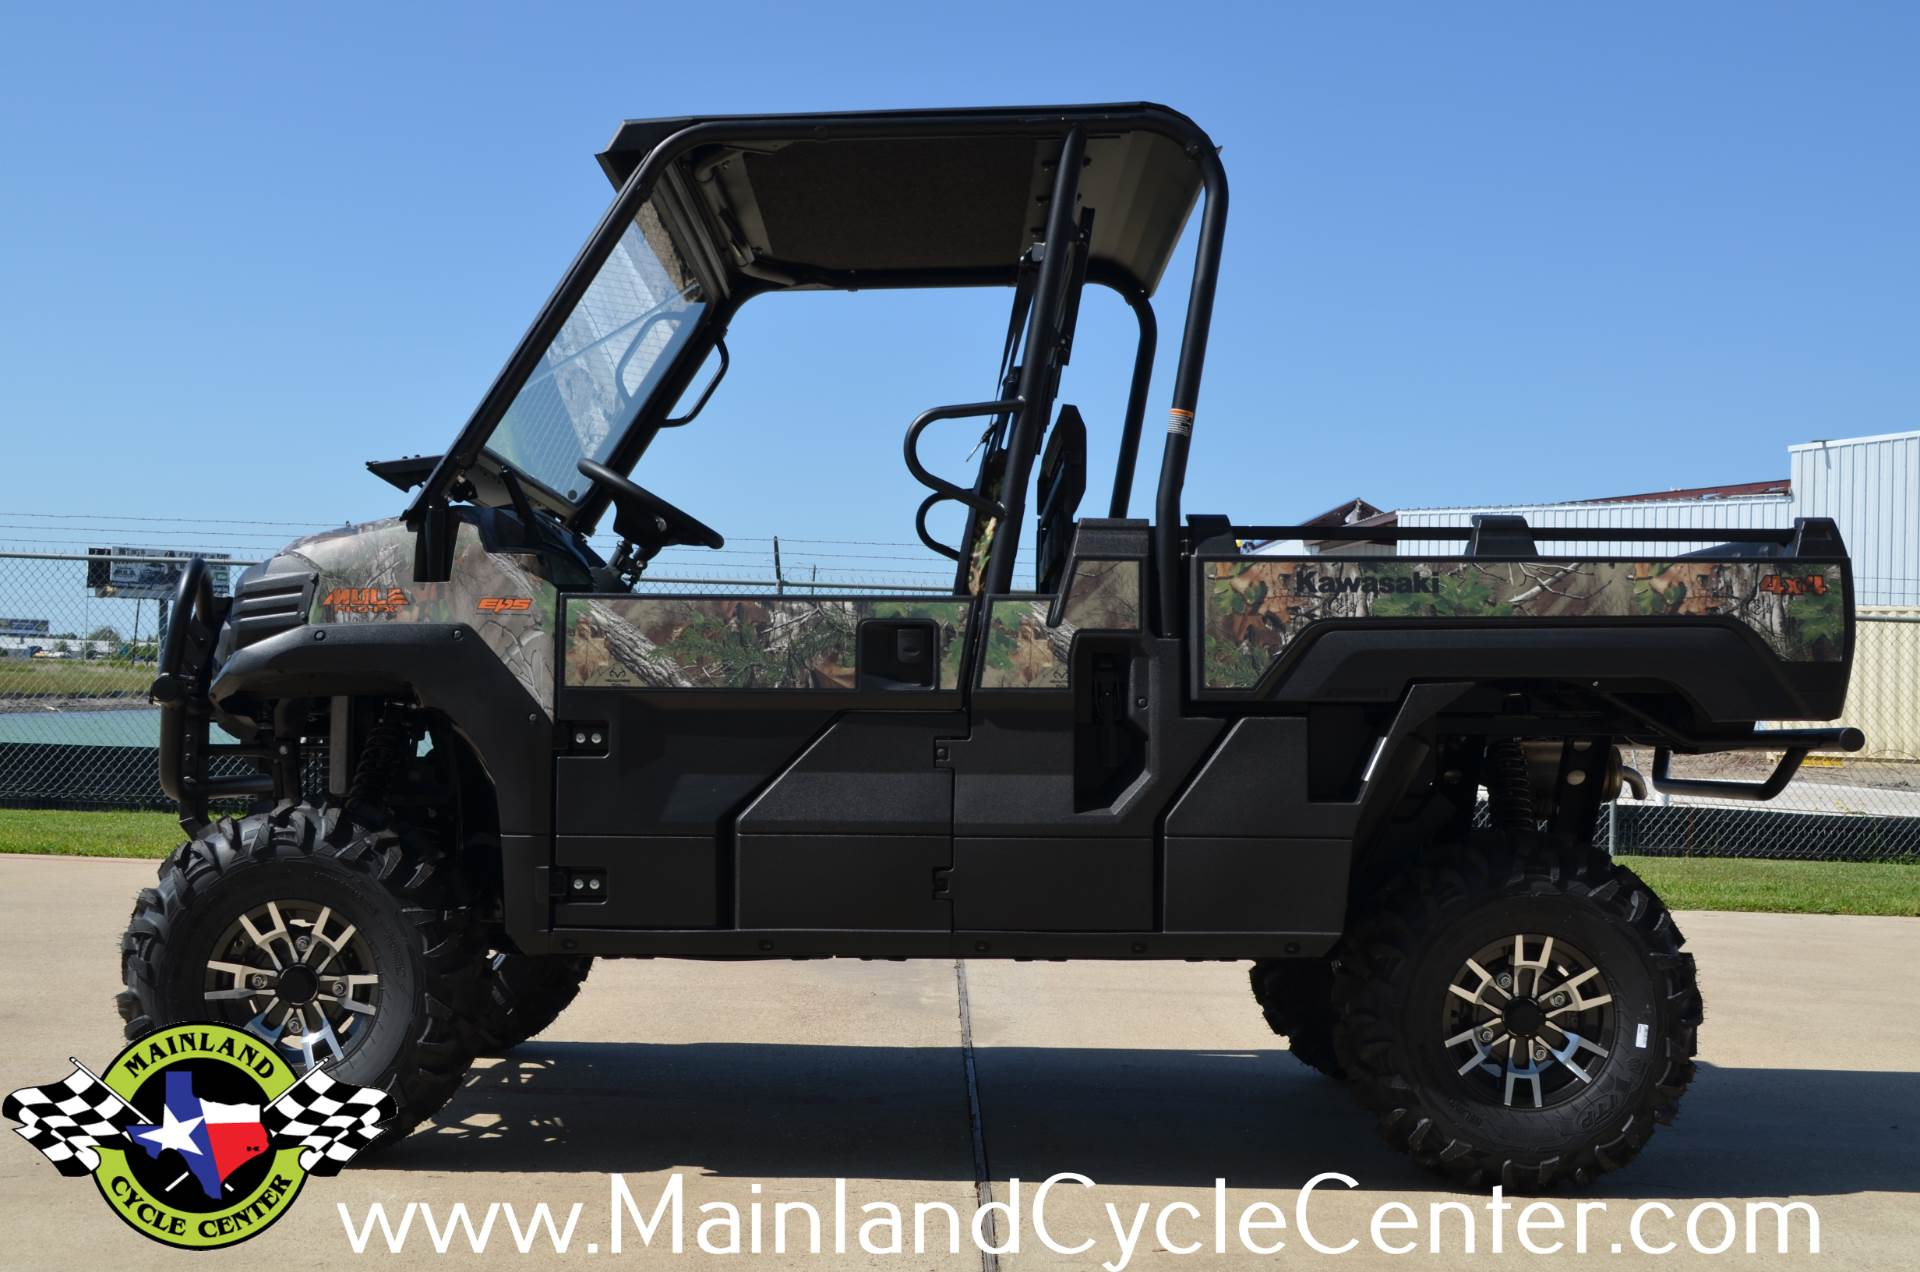 2016 Kawasaki Mule Pro-FX EPS Camo in La Marque, Texas - Photo 5